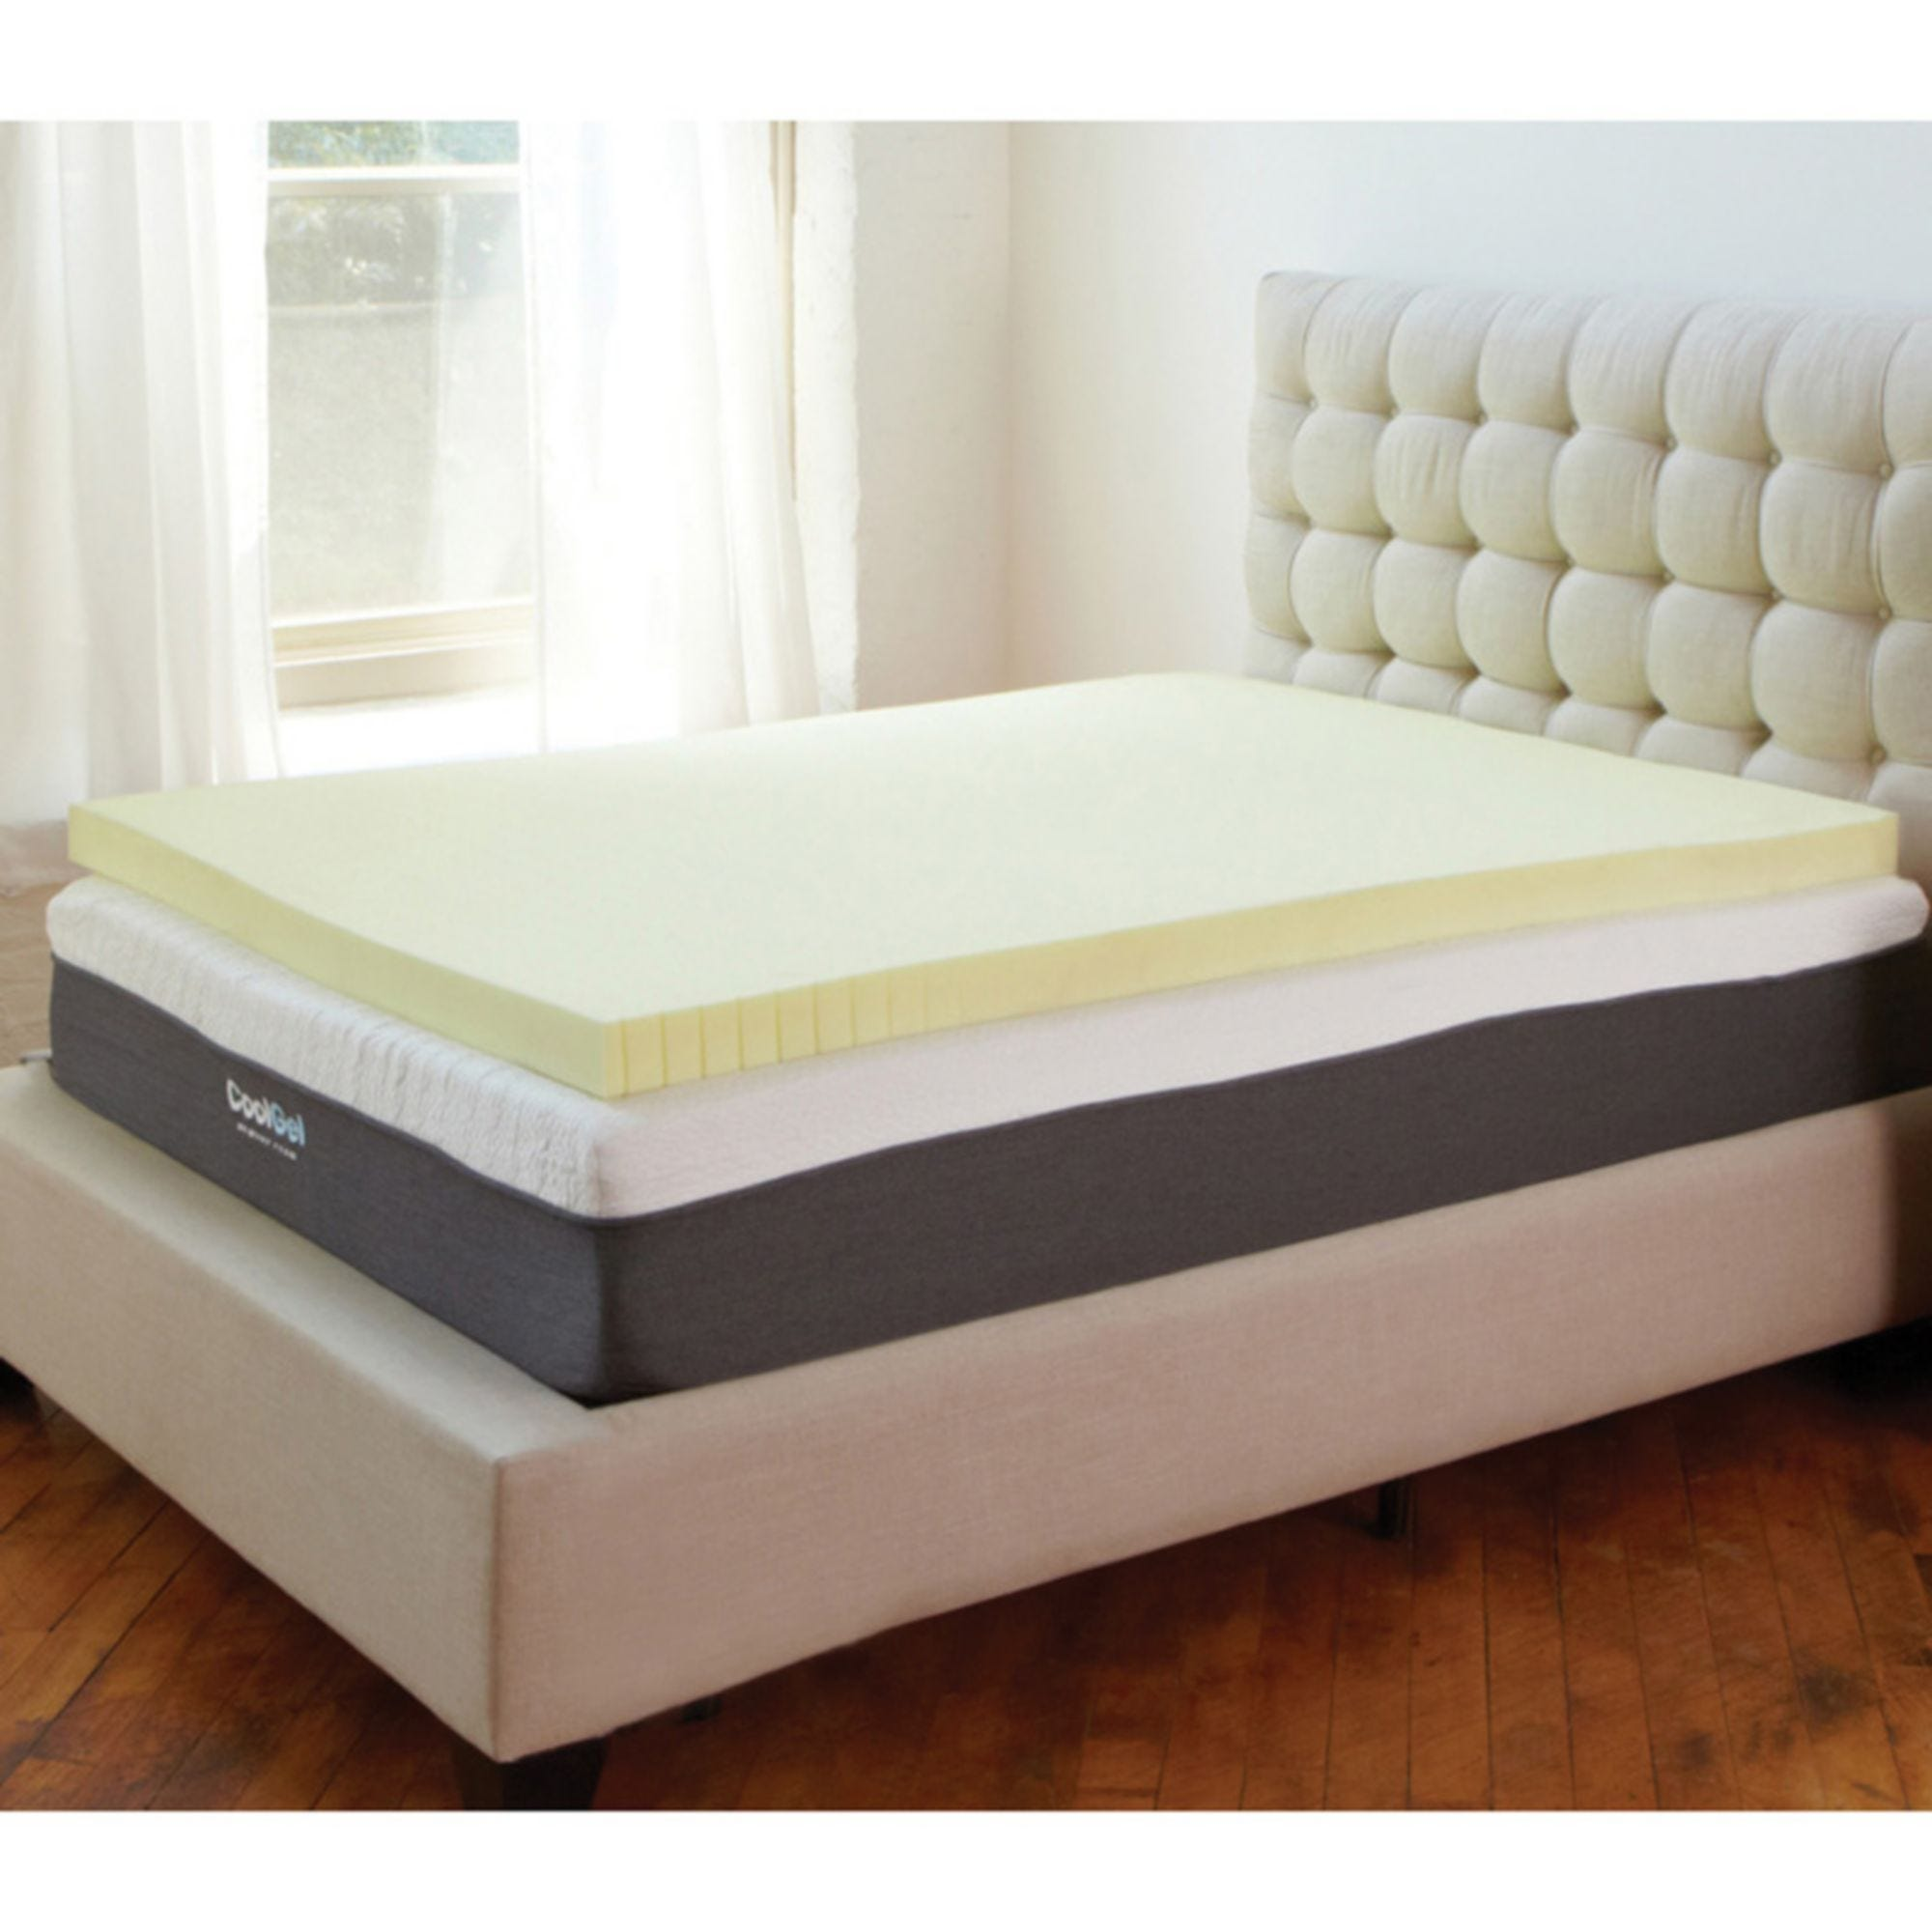 much sale memory prices tempurpedic using how ideas tips luxury foam for and sleeping mattress comfortable modern bedroom mattresses